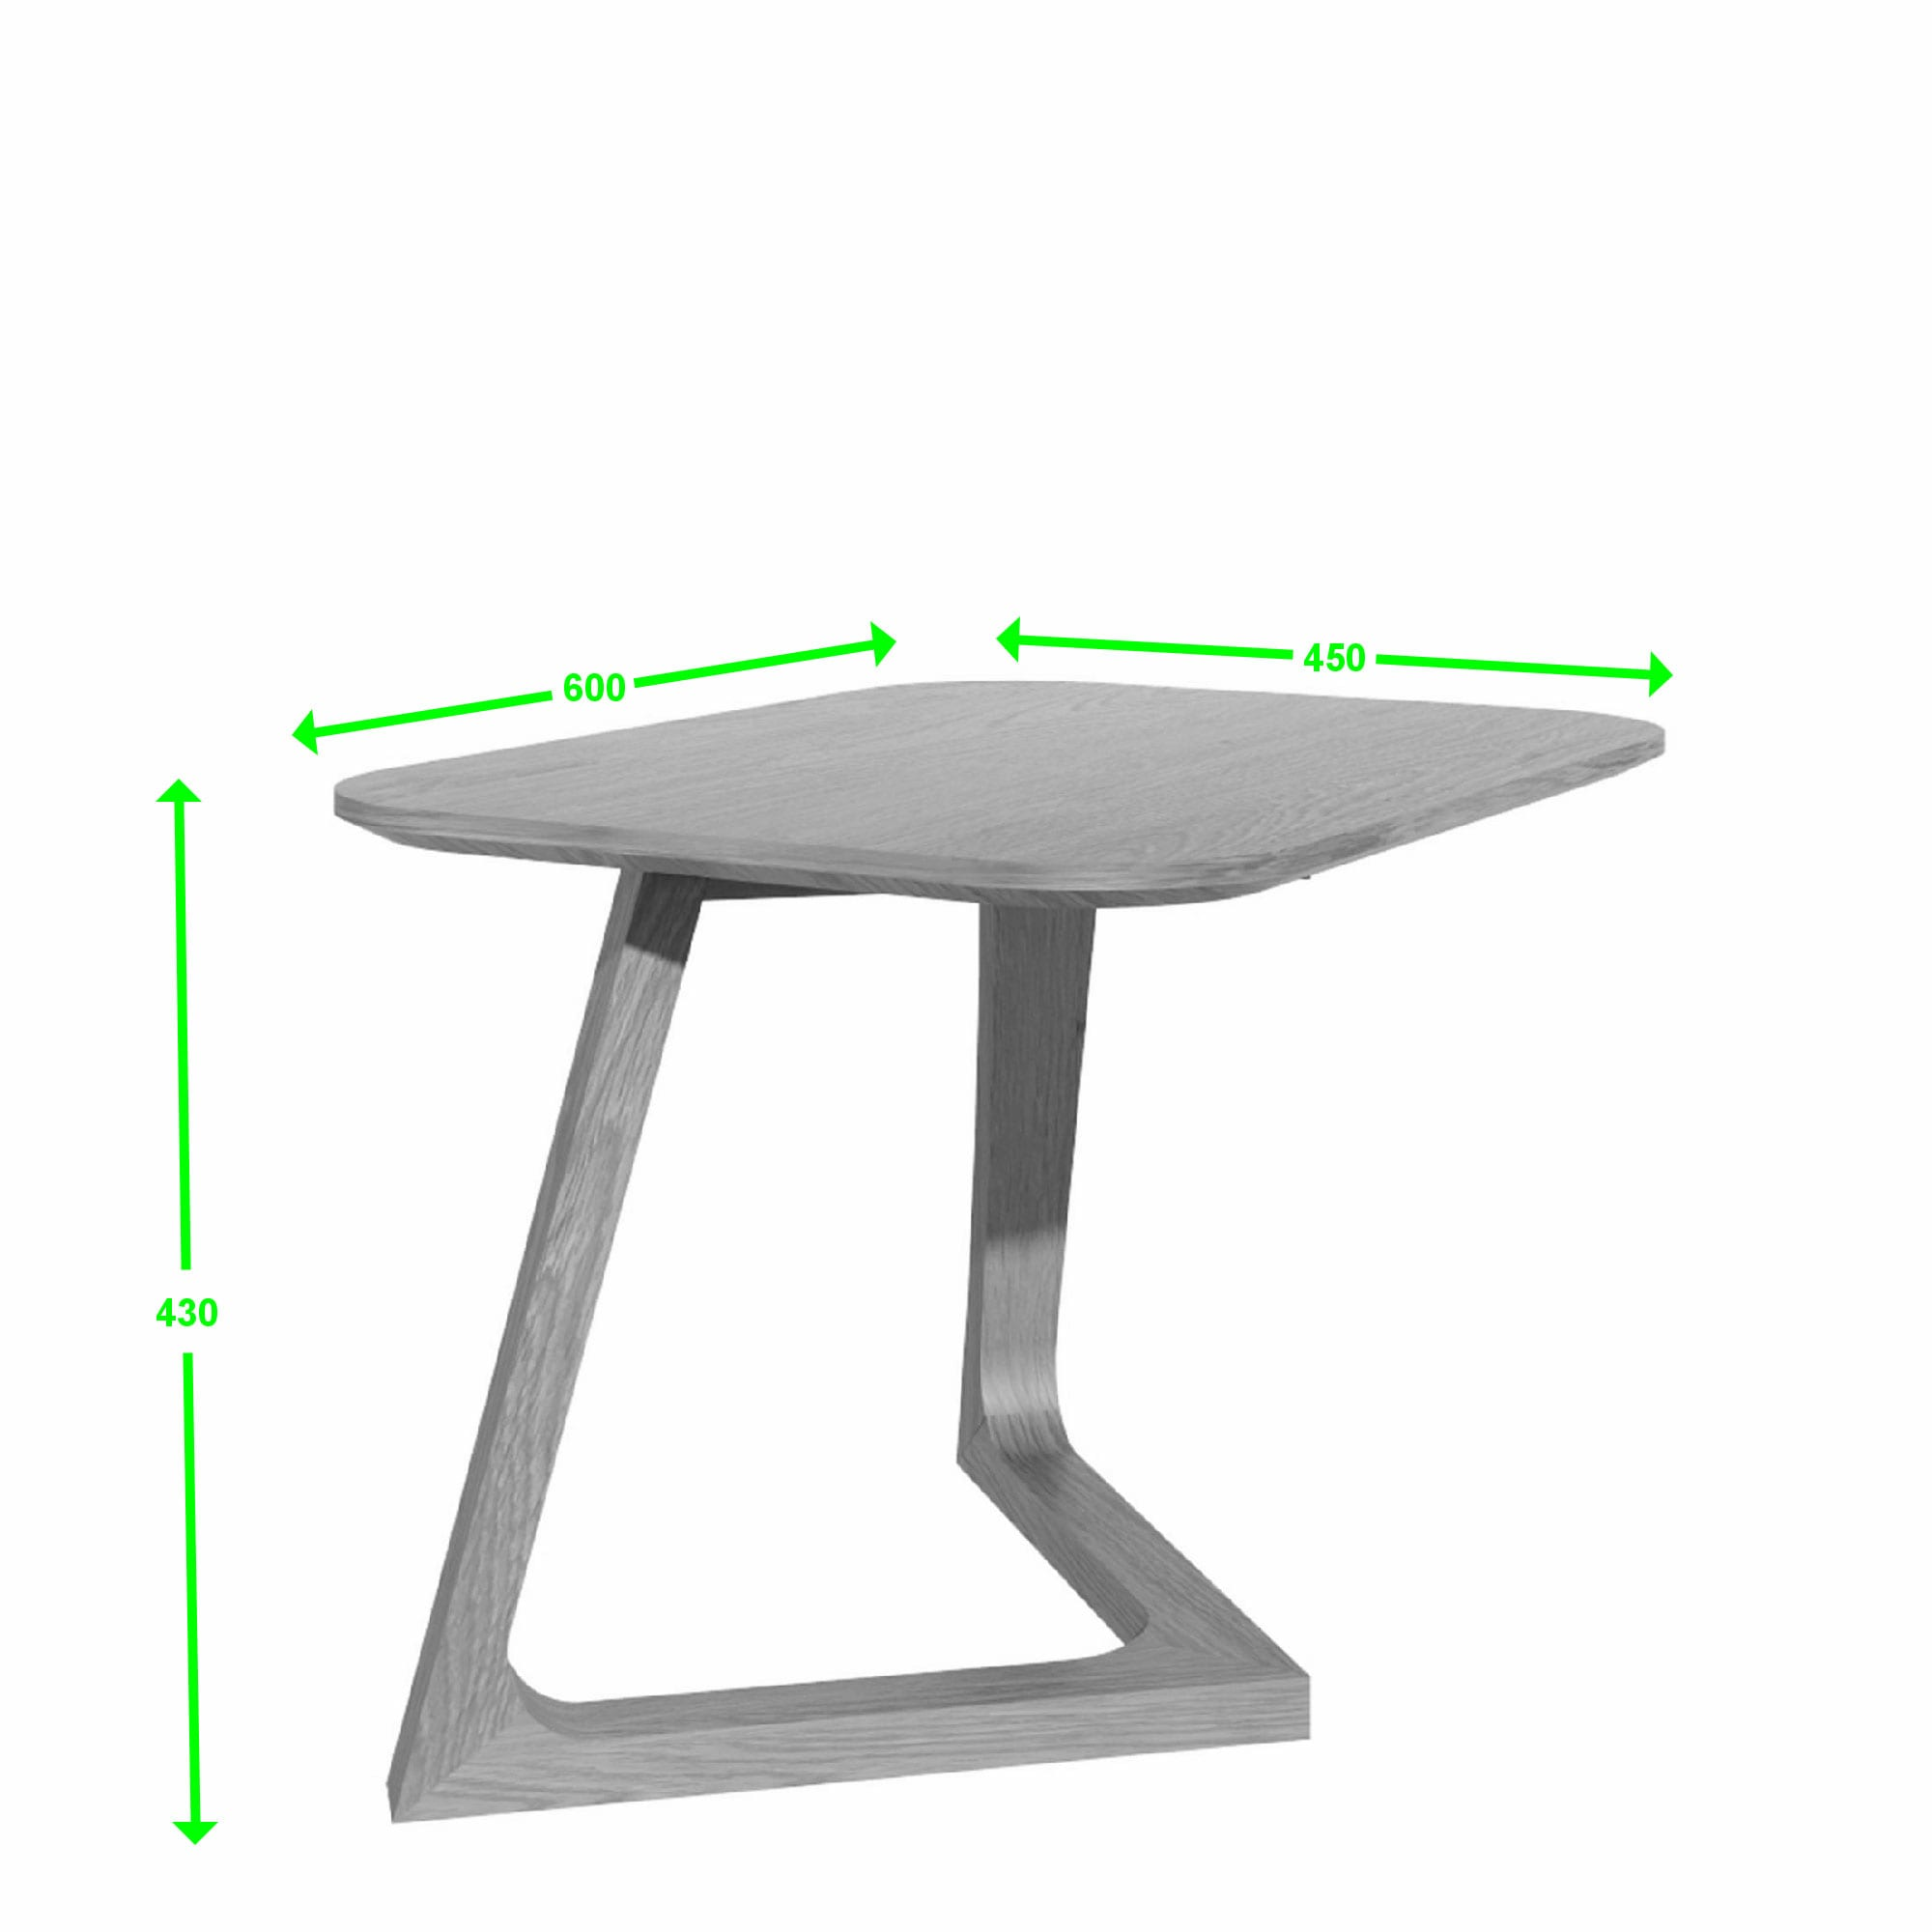 SCAVSLT scandic small lamp table measures